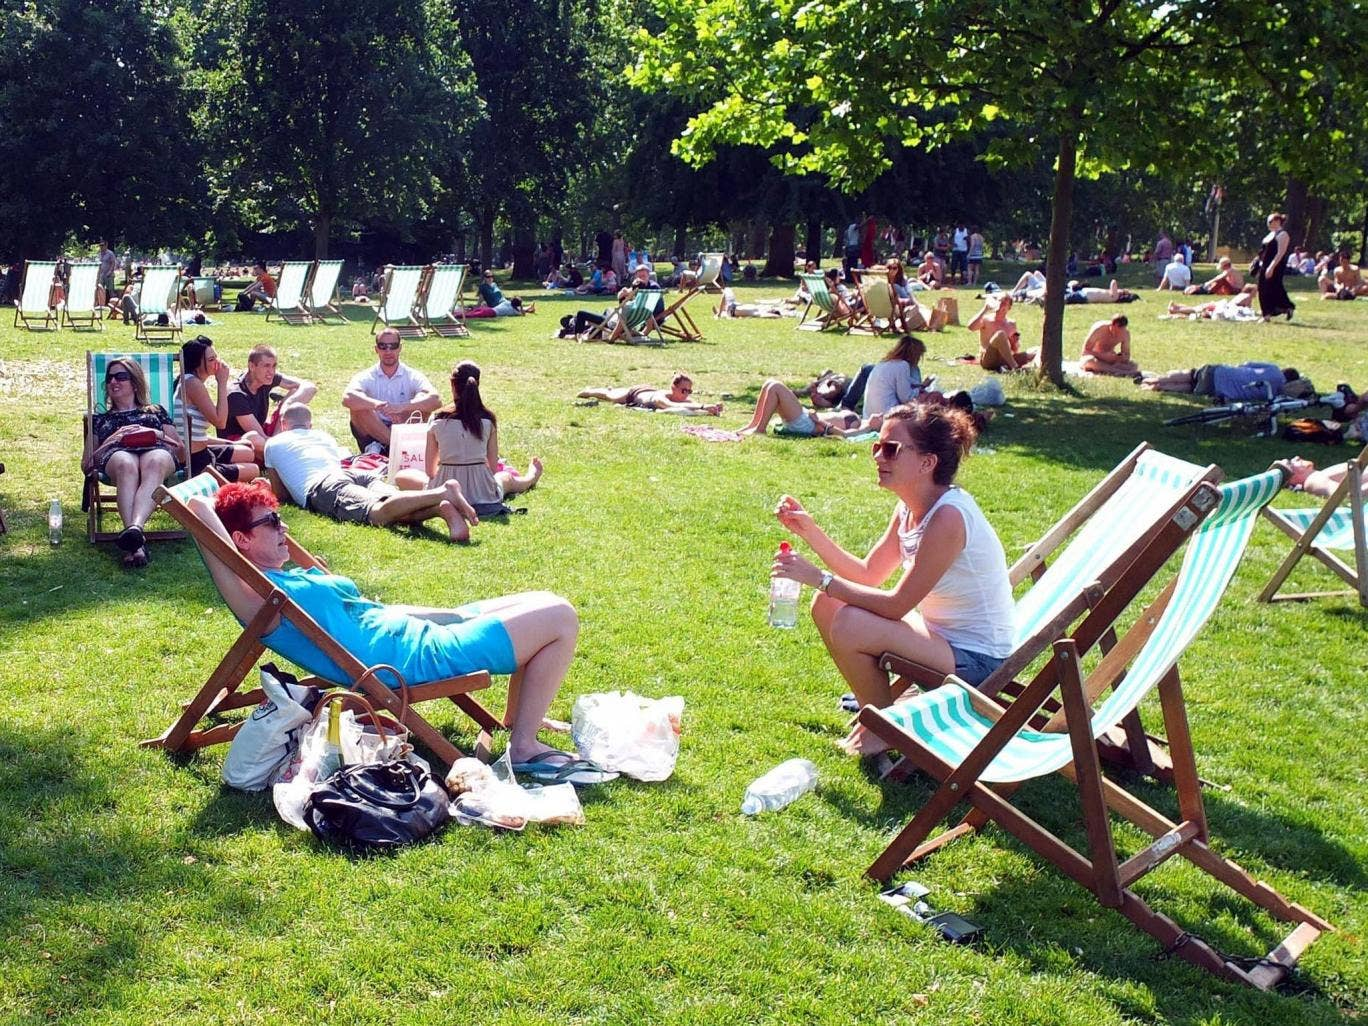 Sunbathers in St James Park, London, as much of Britain is bathed in sunshine